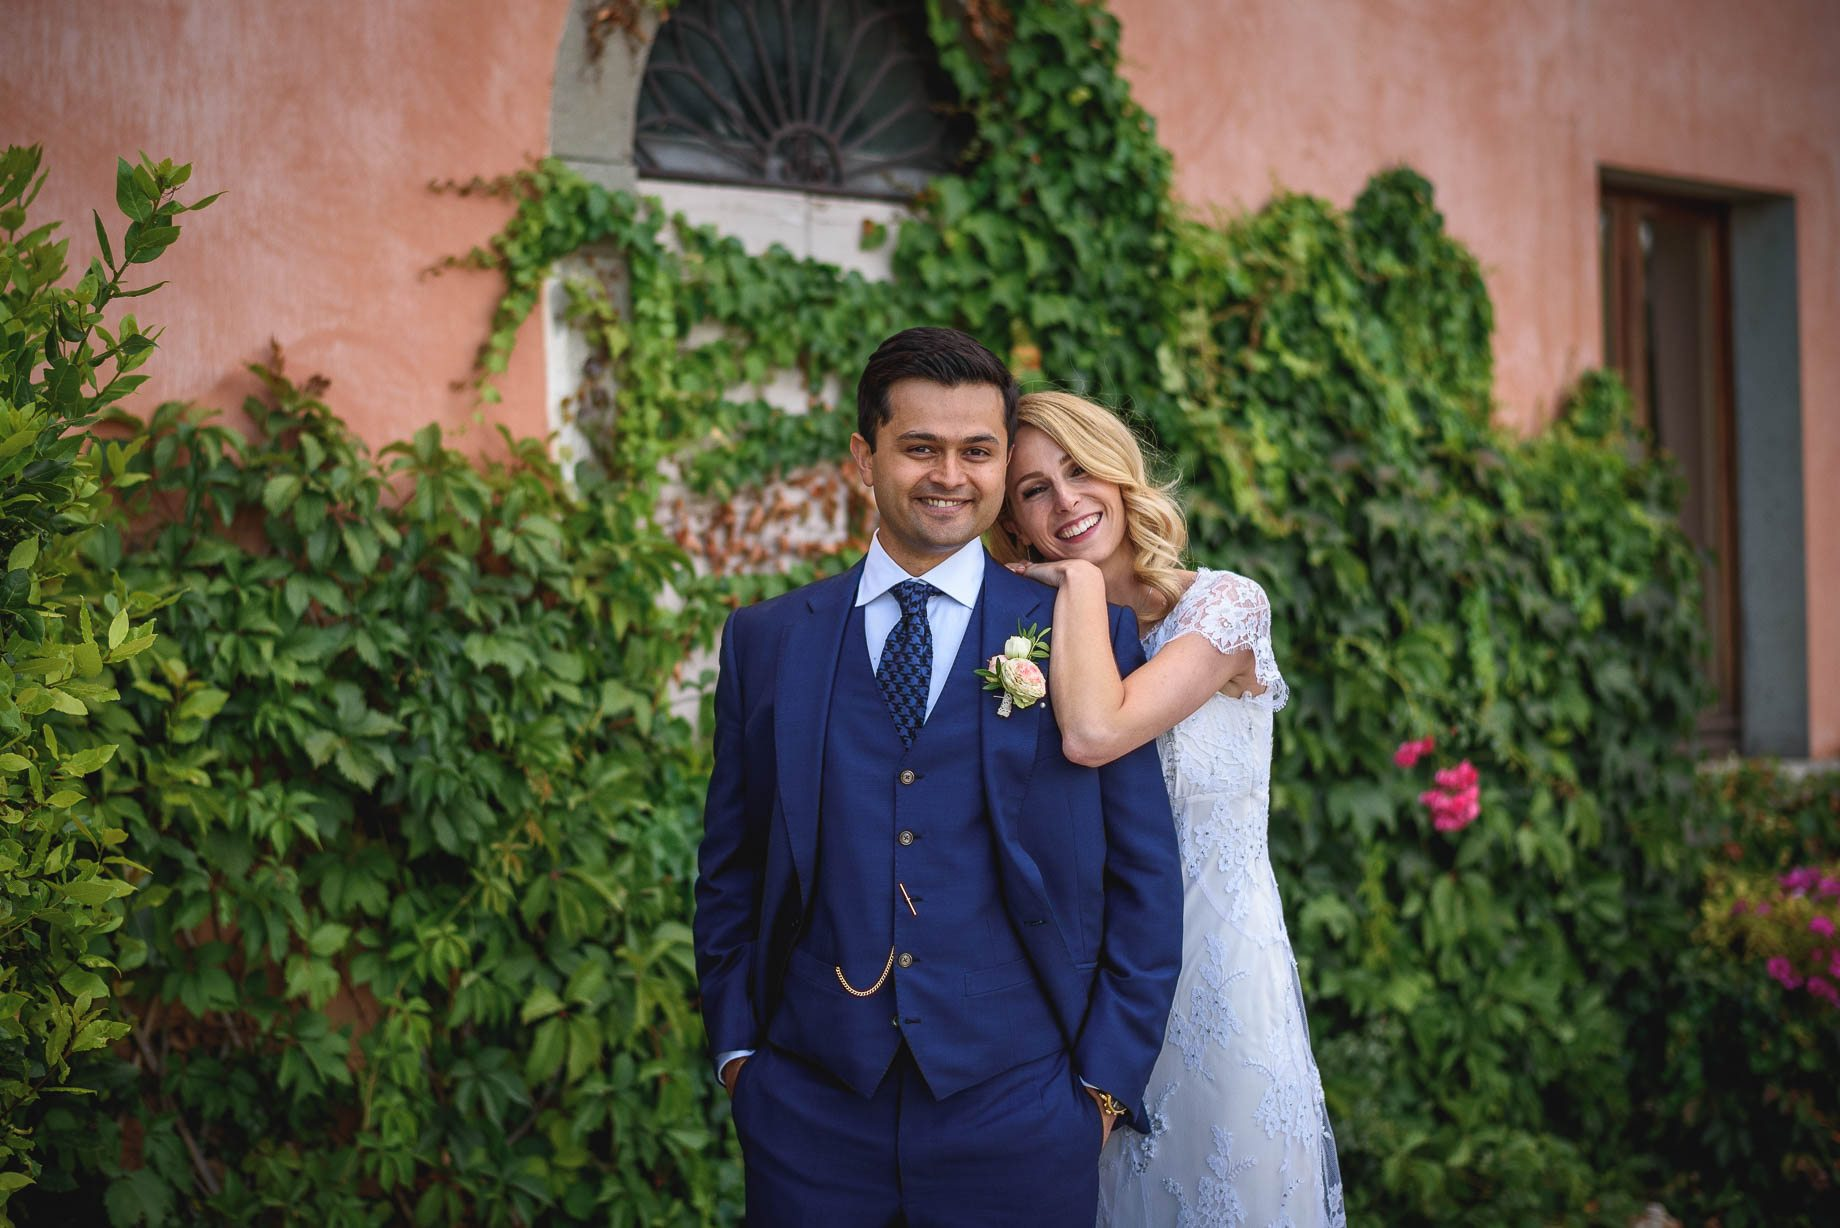 Tuscany wedding photography - Roisin and Moubin - Guy Collier Photography (147 of 251)